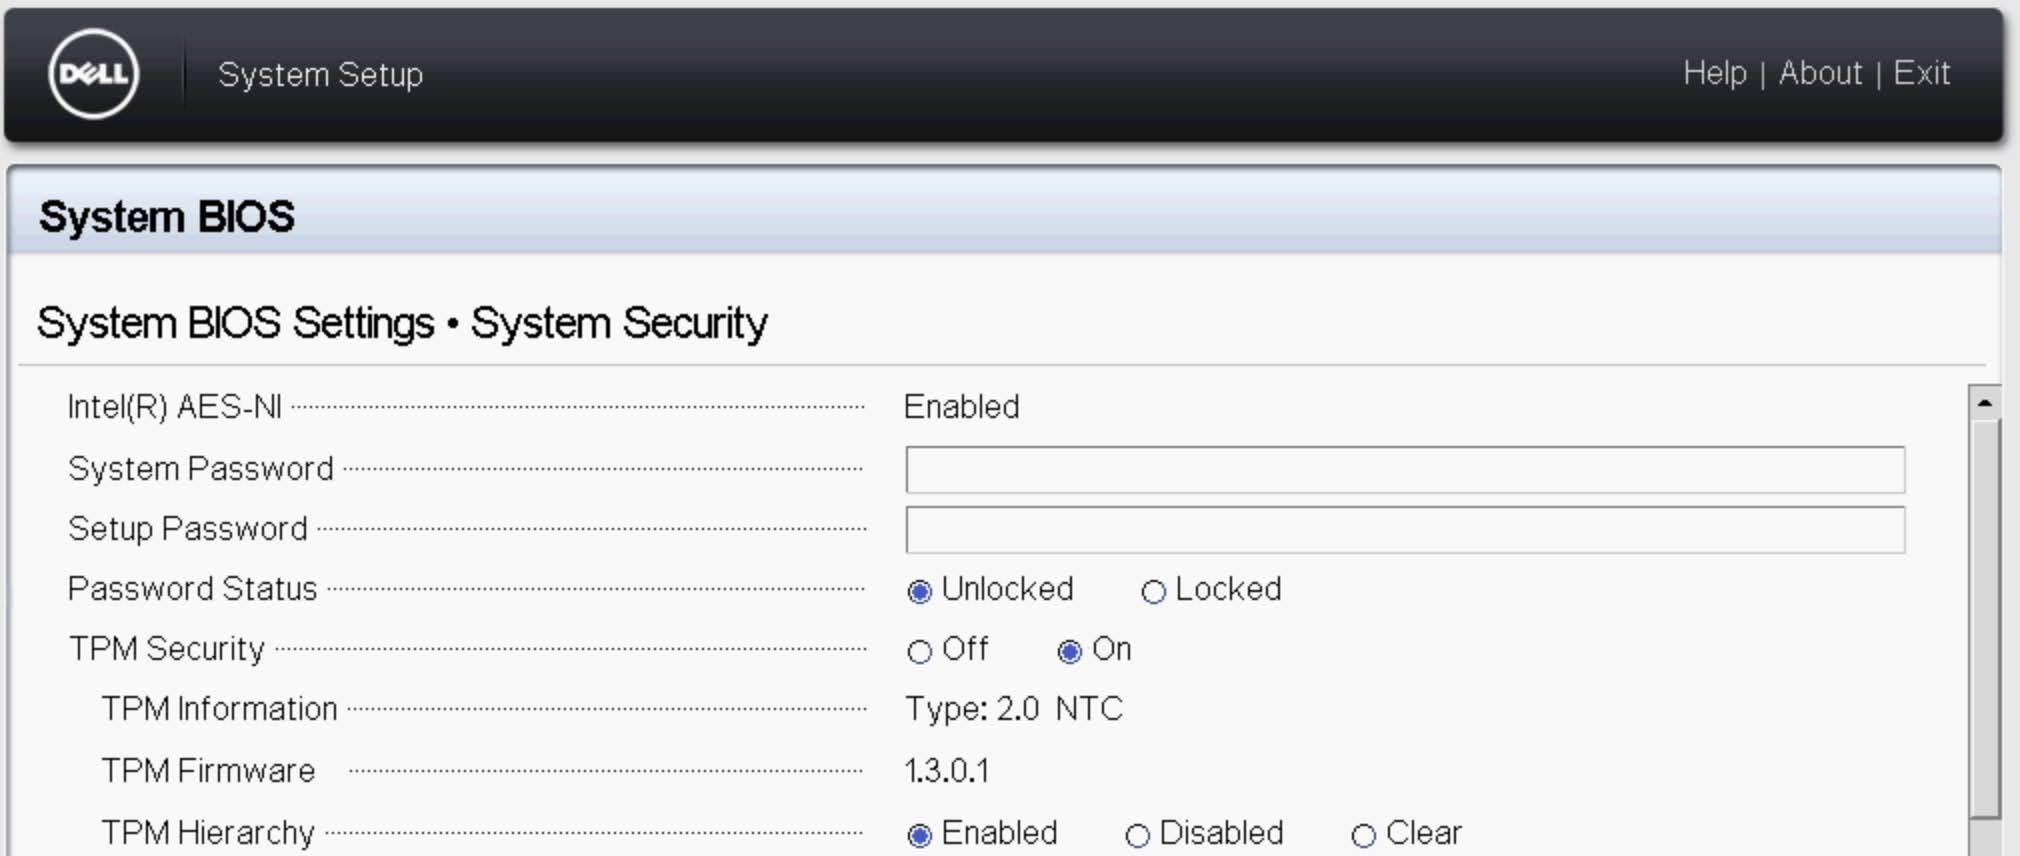 Enable TPM 2.0 for Dell motherboard: Set the TPM Security option to On.